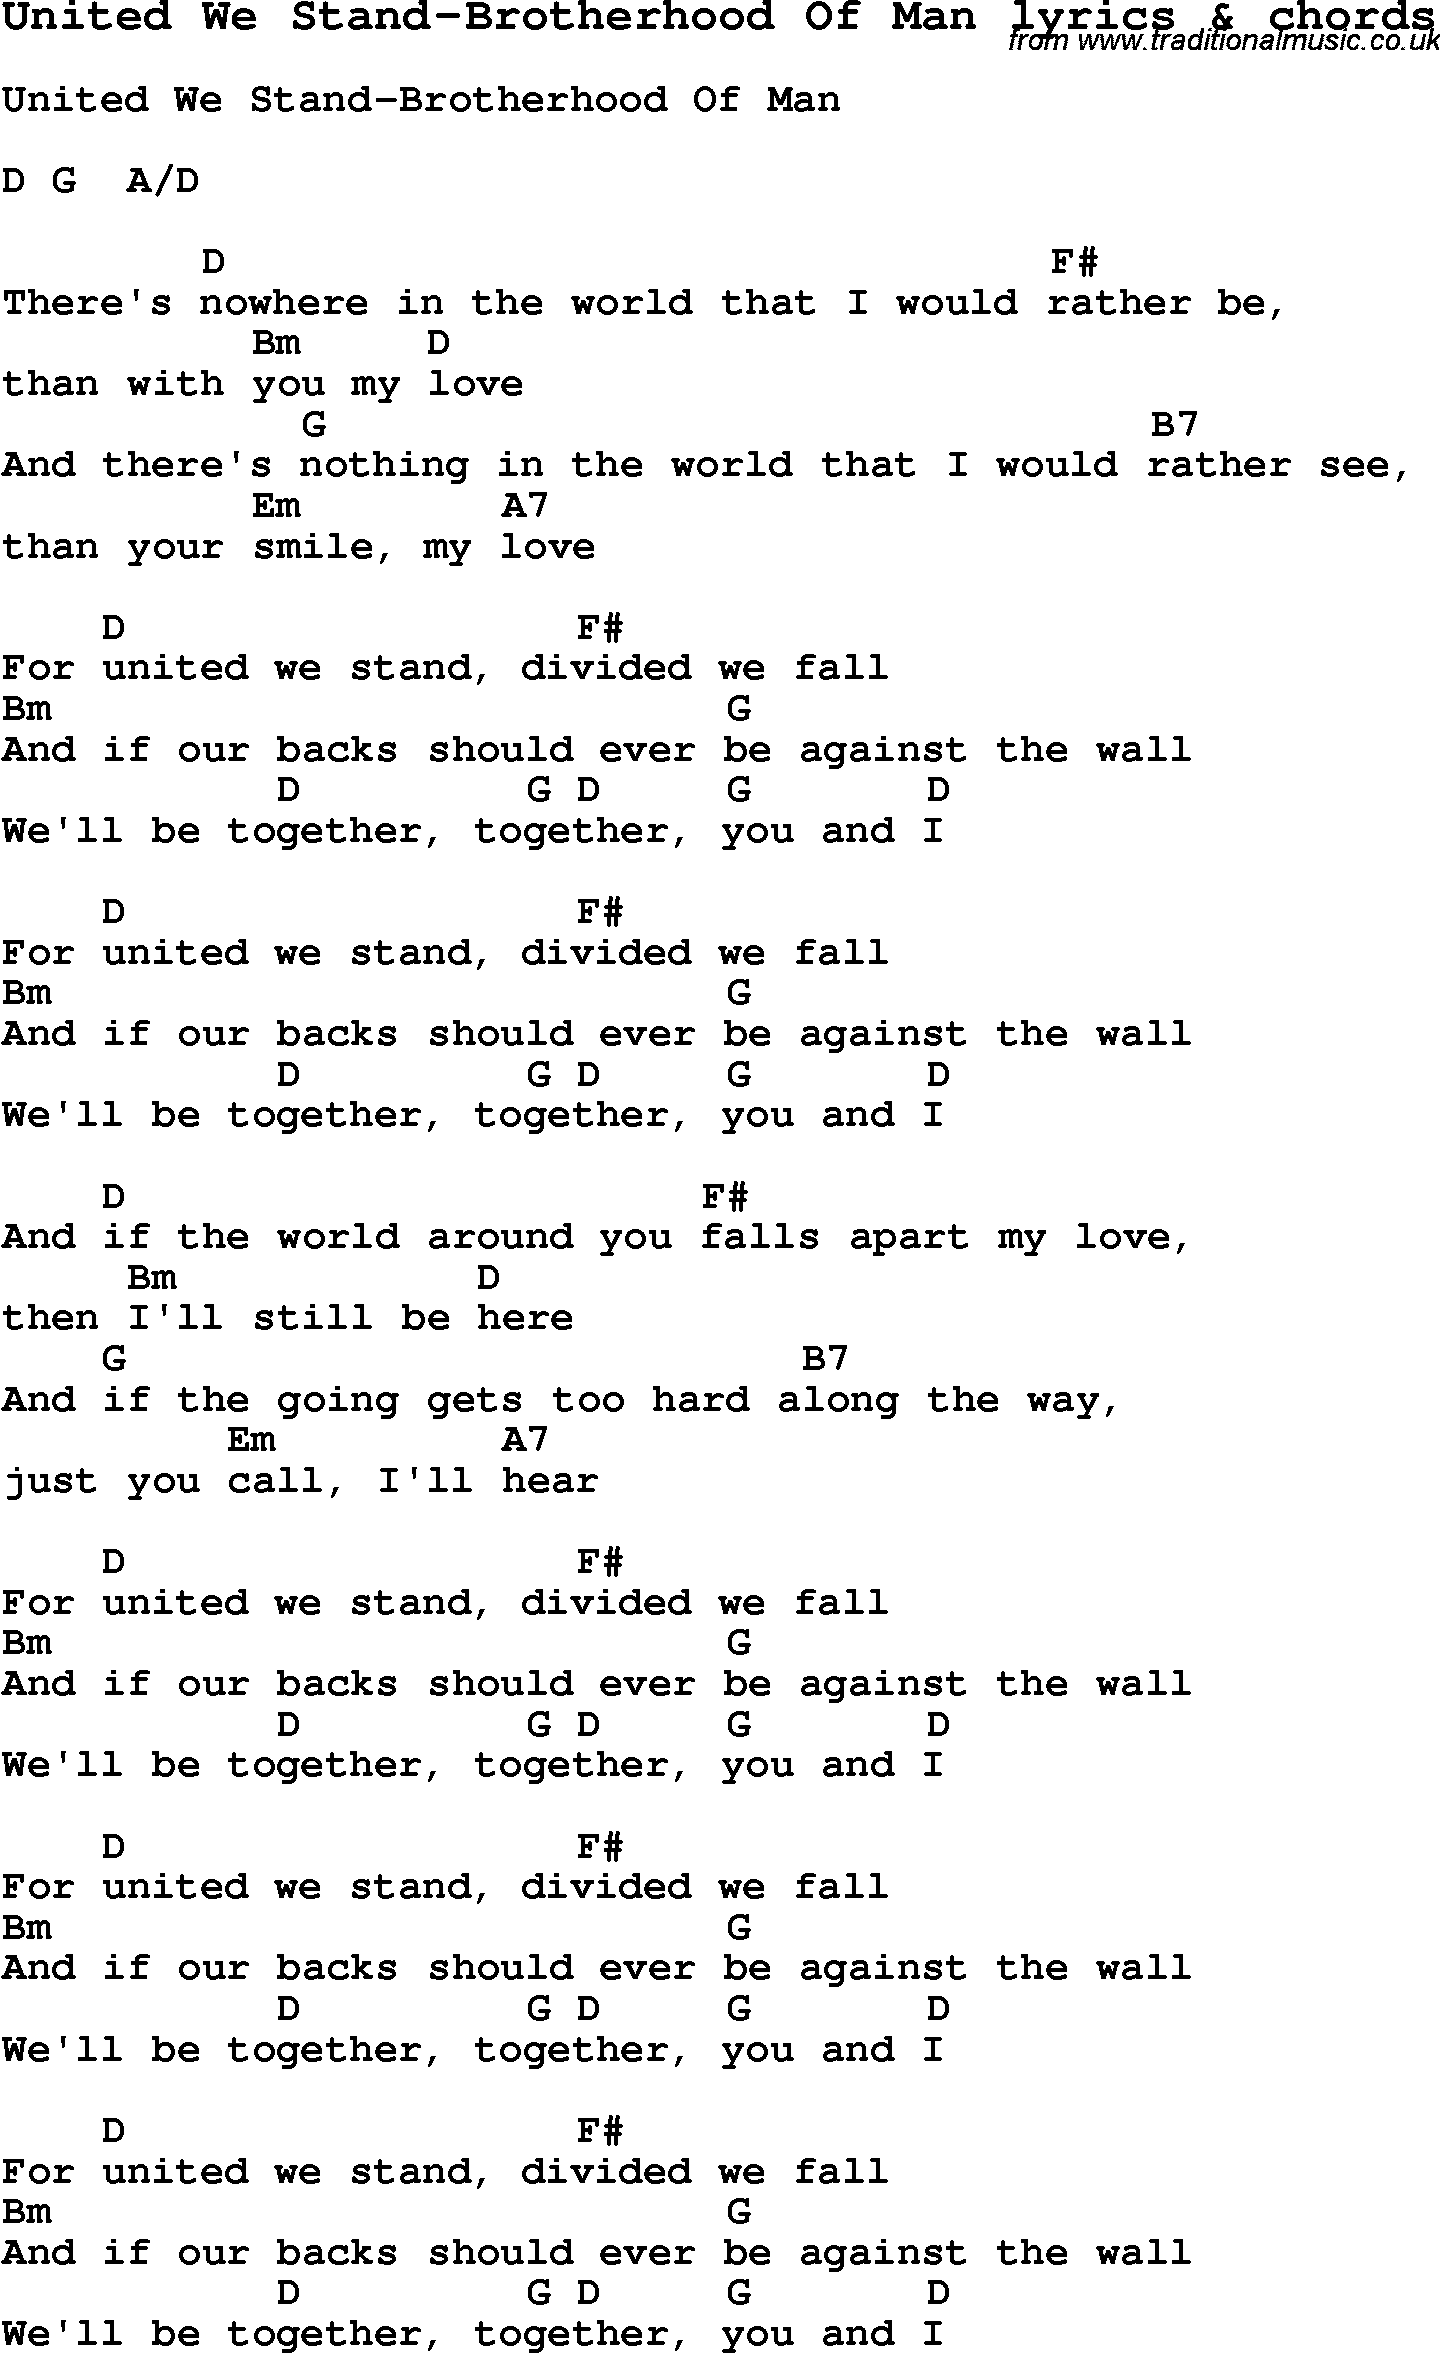 Love Song Lyrics Forunited We Stand Brotherhood Of Man With Chords